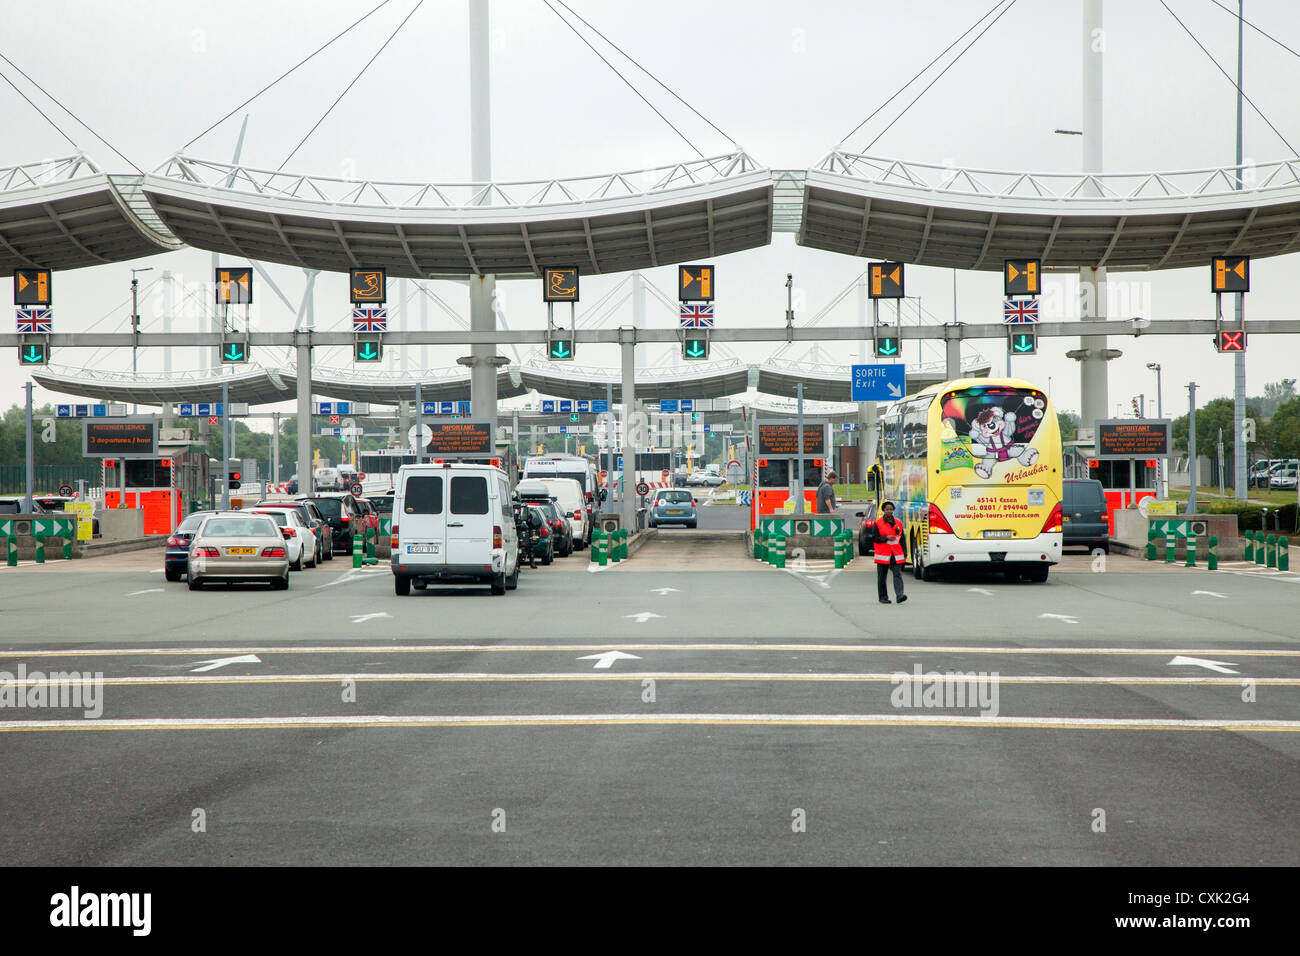 Eurotunnel incoming vehicles control at Calais, France - Stock Image